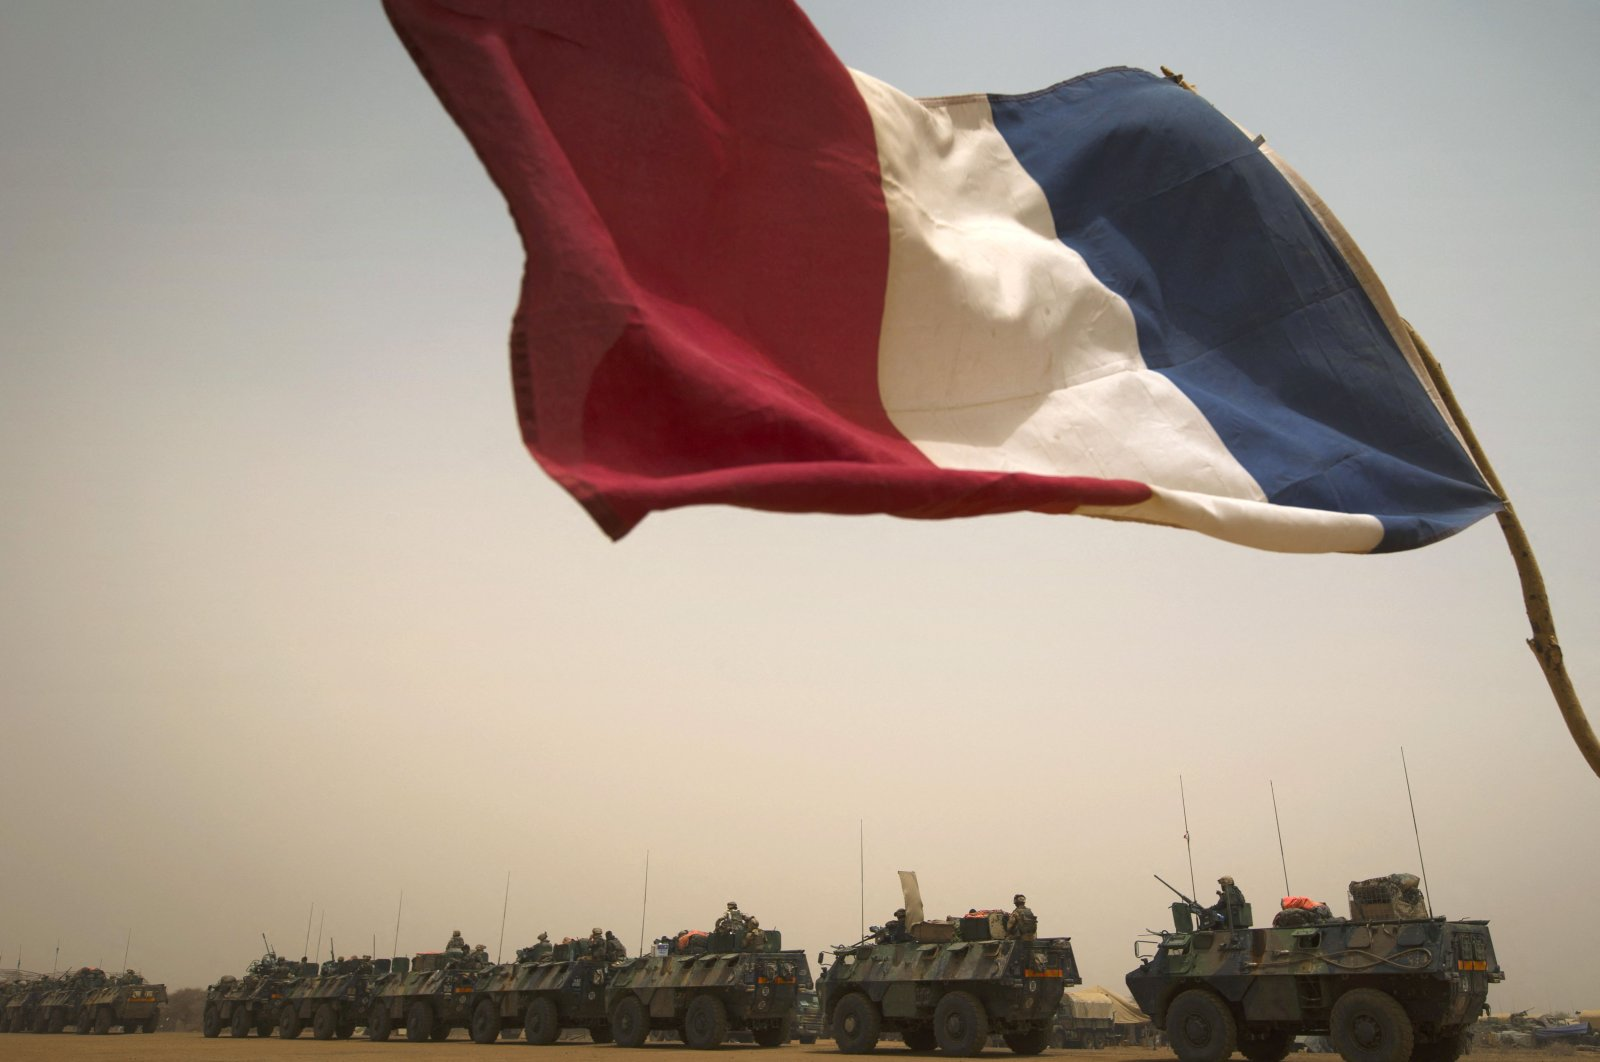 """French armored personnel carriers (VAB) leave the city of Gao during the """"Gustav operation,"""" Mali, April 6, 2013. (AFP Photo)"""